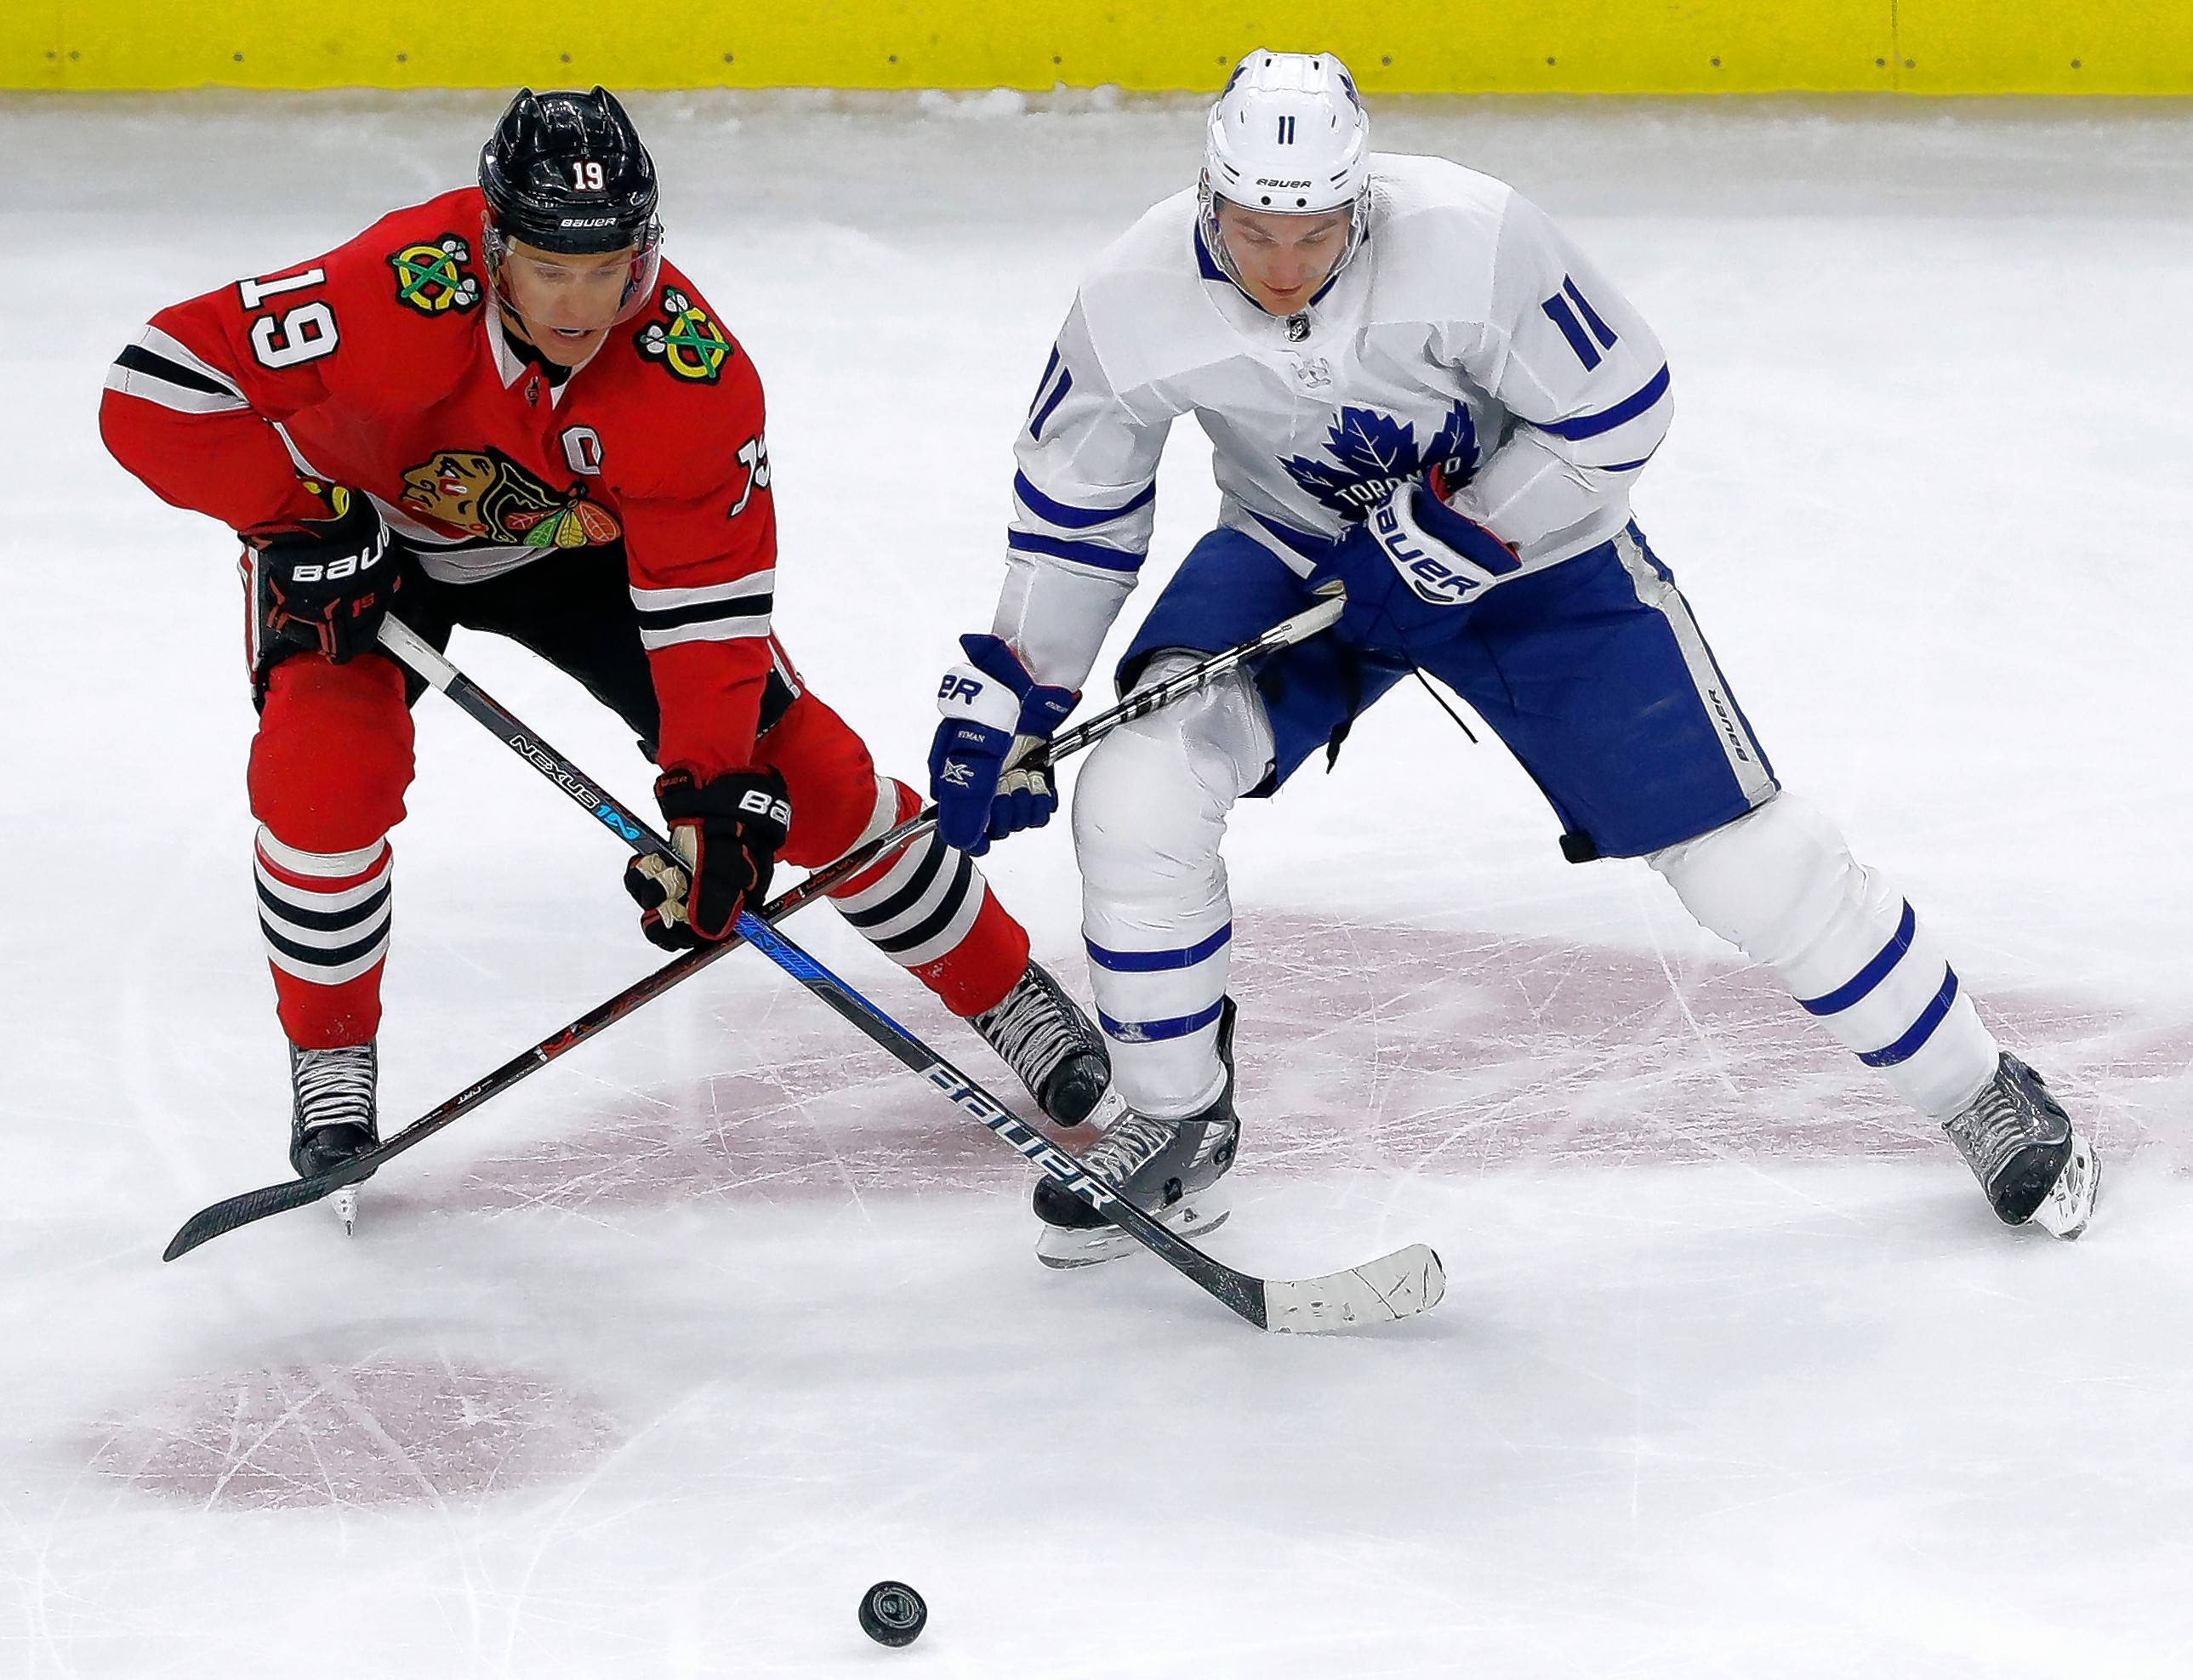 Chicago Blackhawks to host Toronto Maple Leafs for home opener